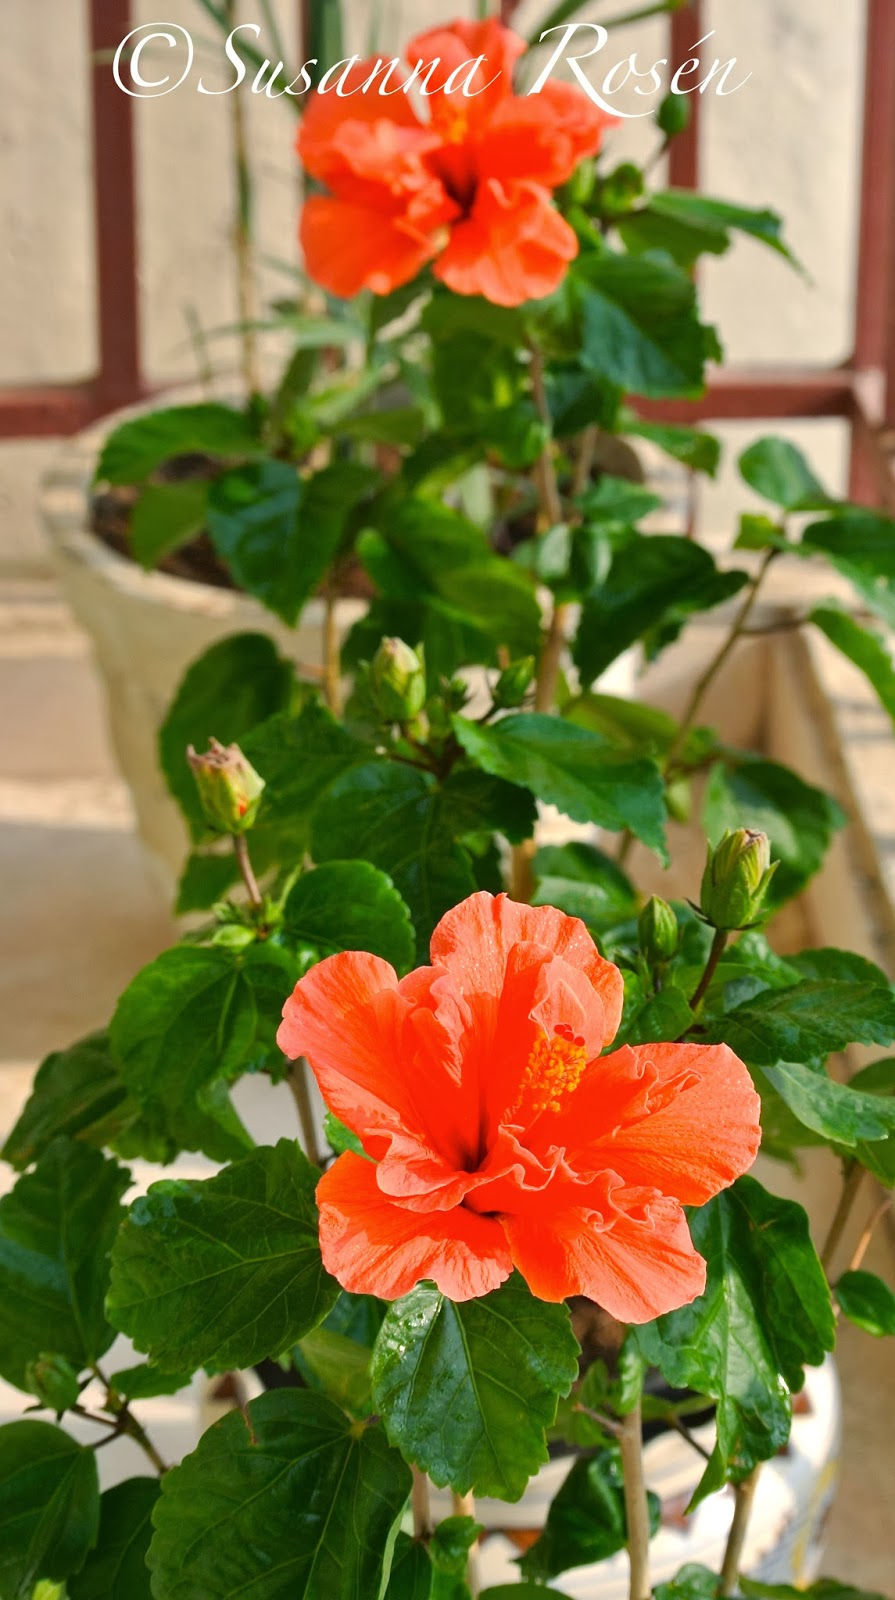 The house of susanna my life in india my christmas hibiscus is of course they didbig beautiful flowers and lots of buds waiting to bloom izmirmasajfo